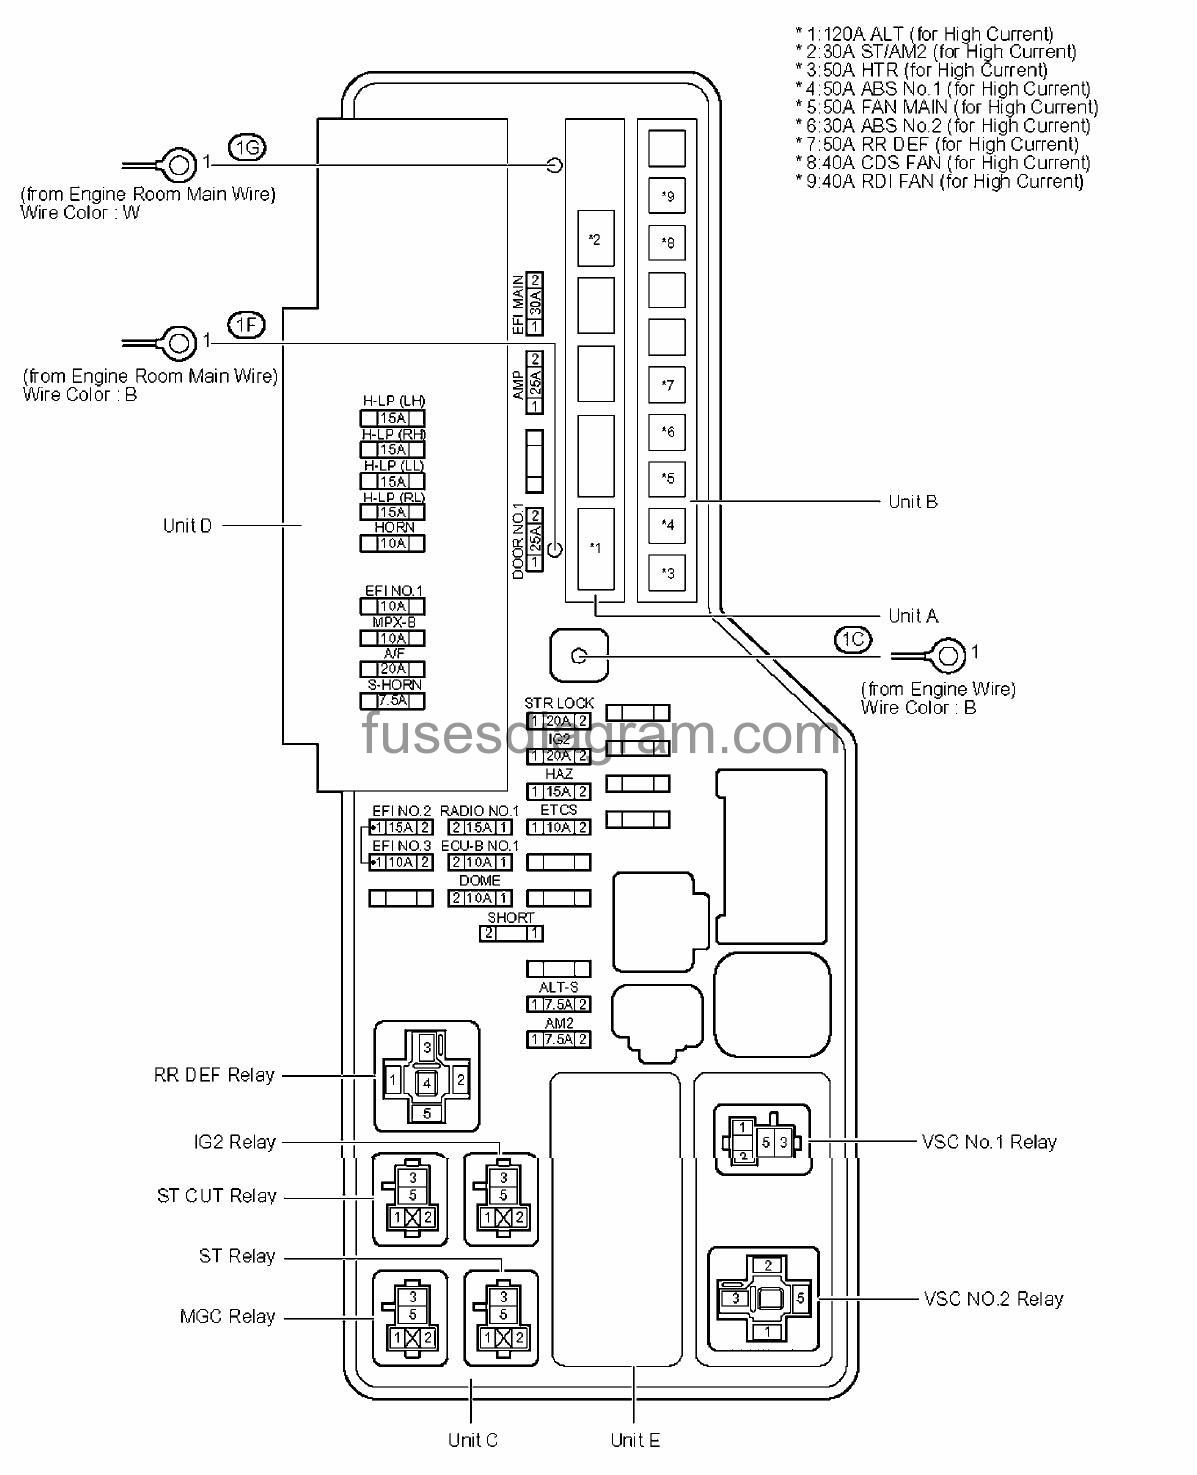 For A 2010 Toyota Camry Fuse Panel Diagram Wiring Third Level Carina E Library 2012 02